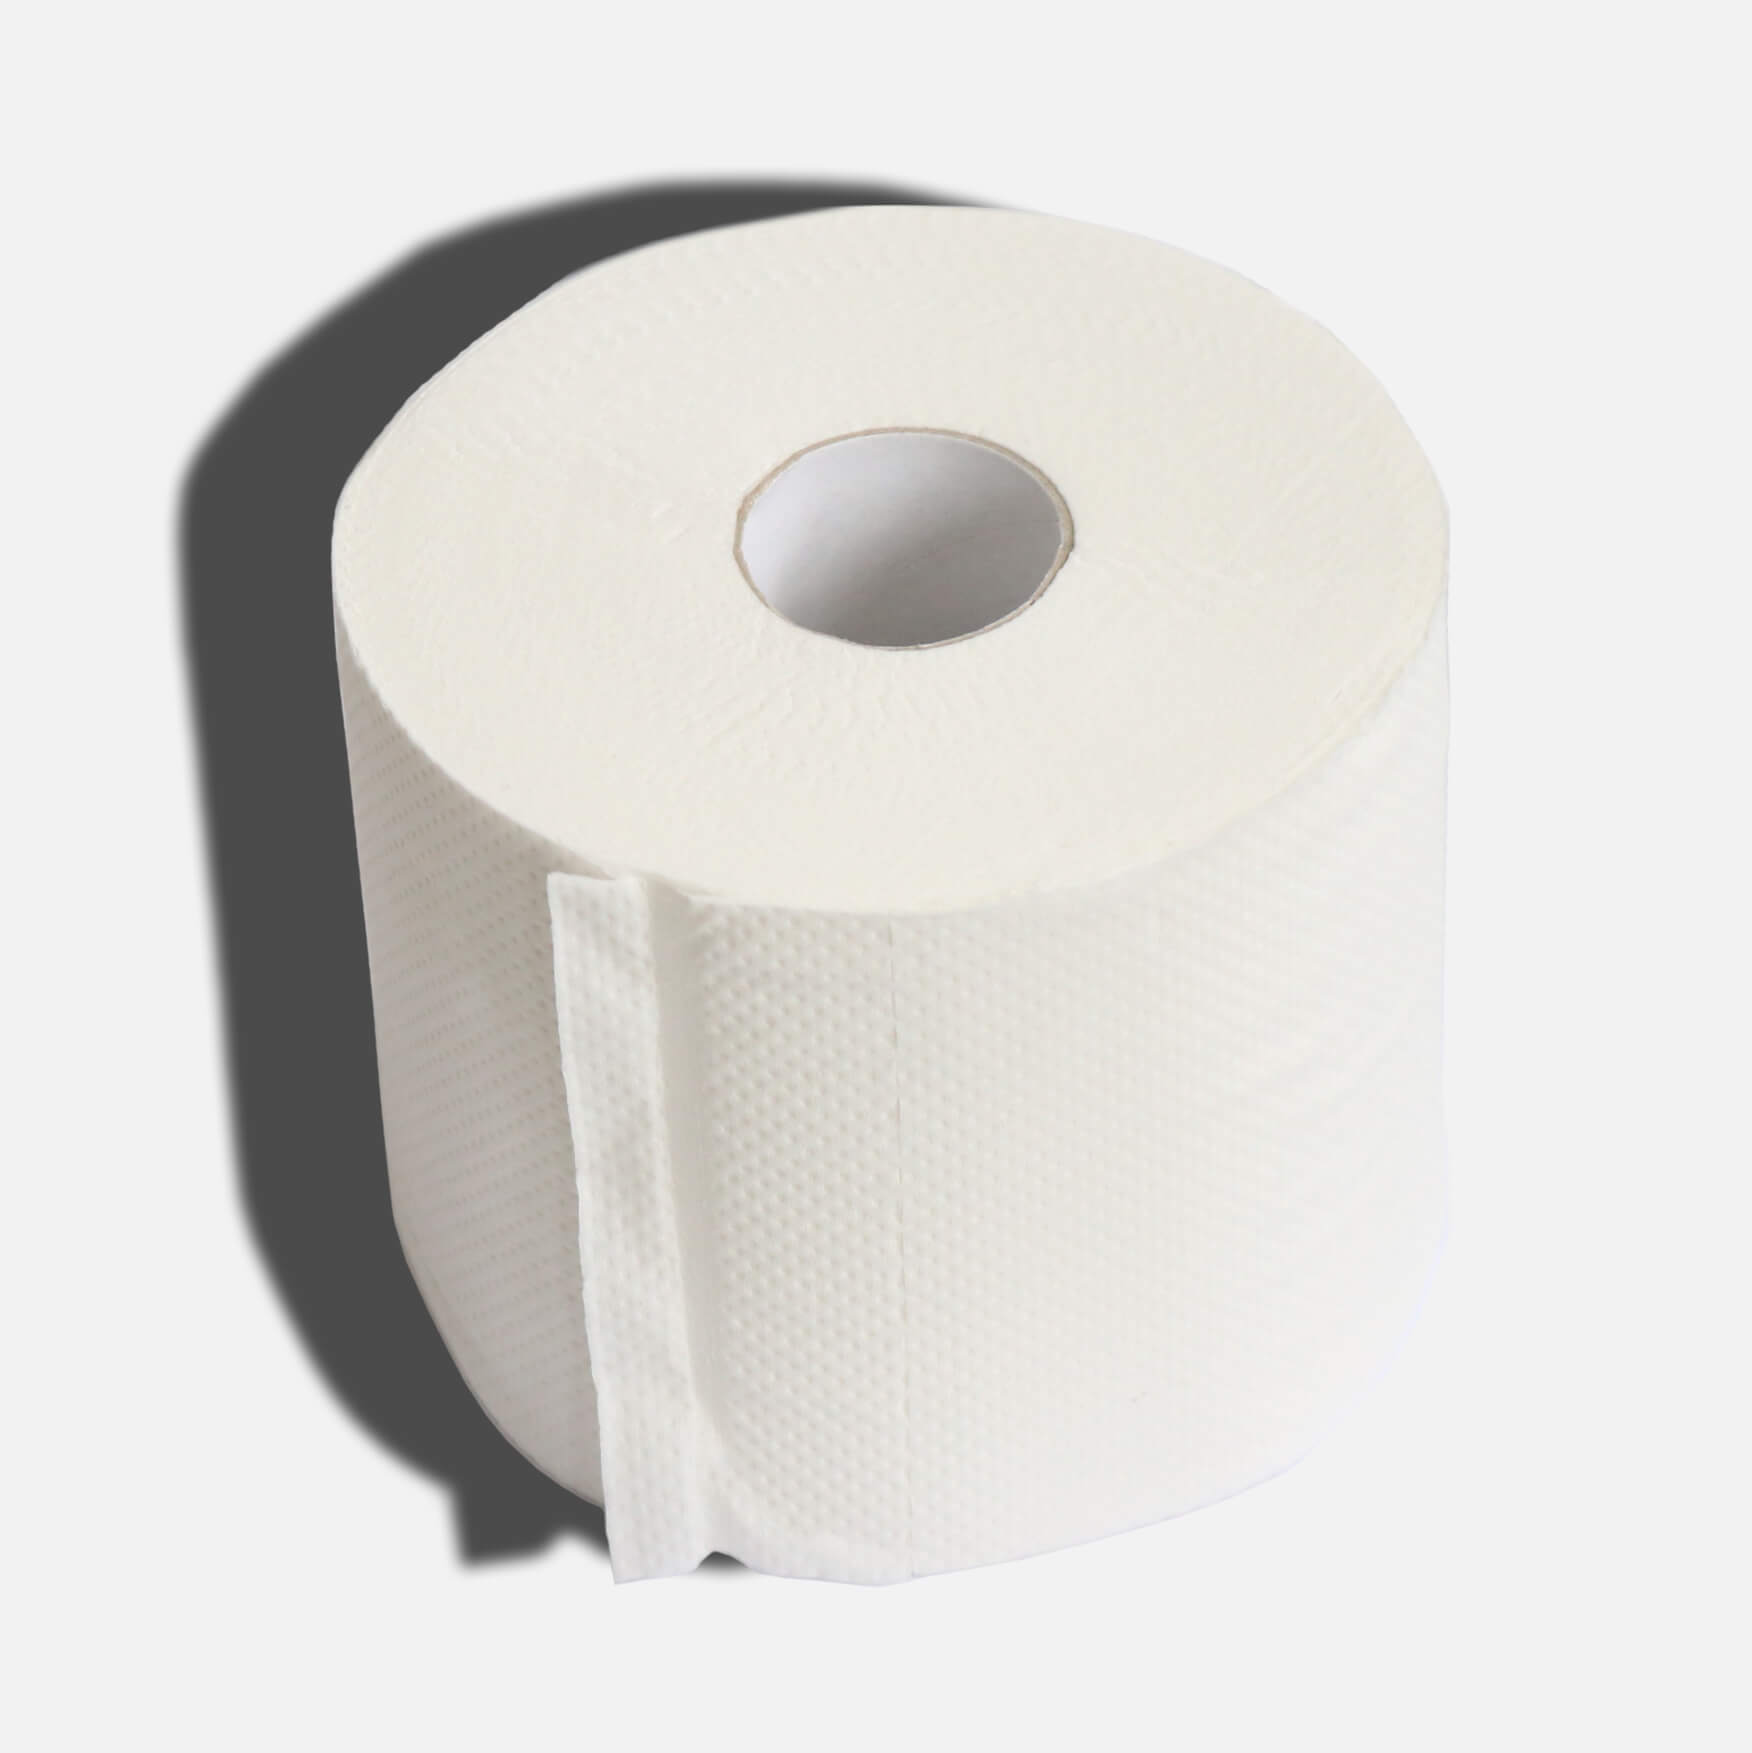 100% Recycled Toilet Paper - Double Length Rolls - 3 Ply - 24 Naked Rolls